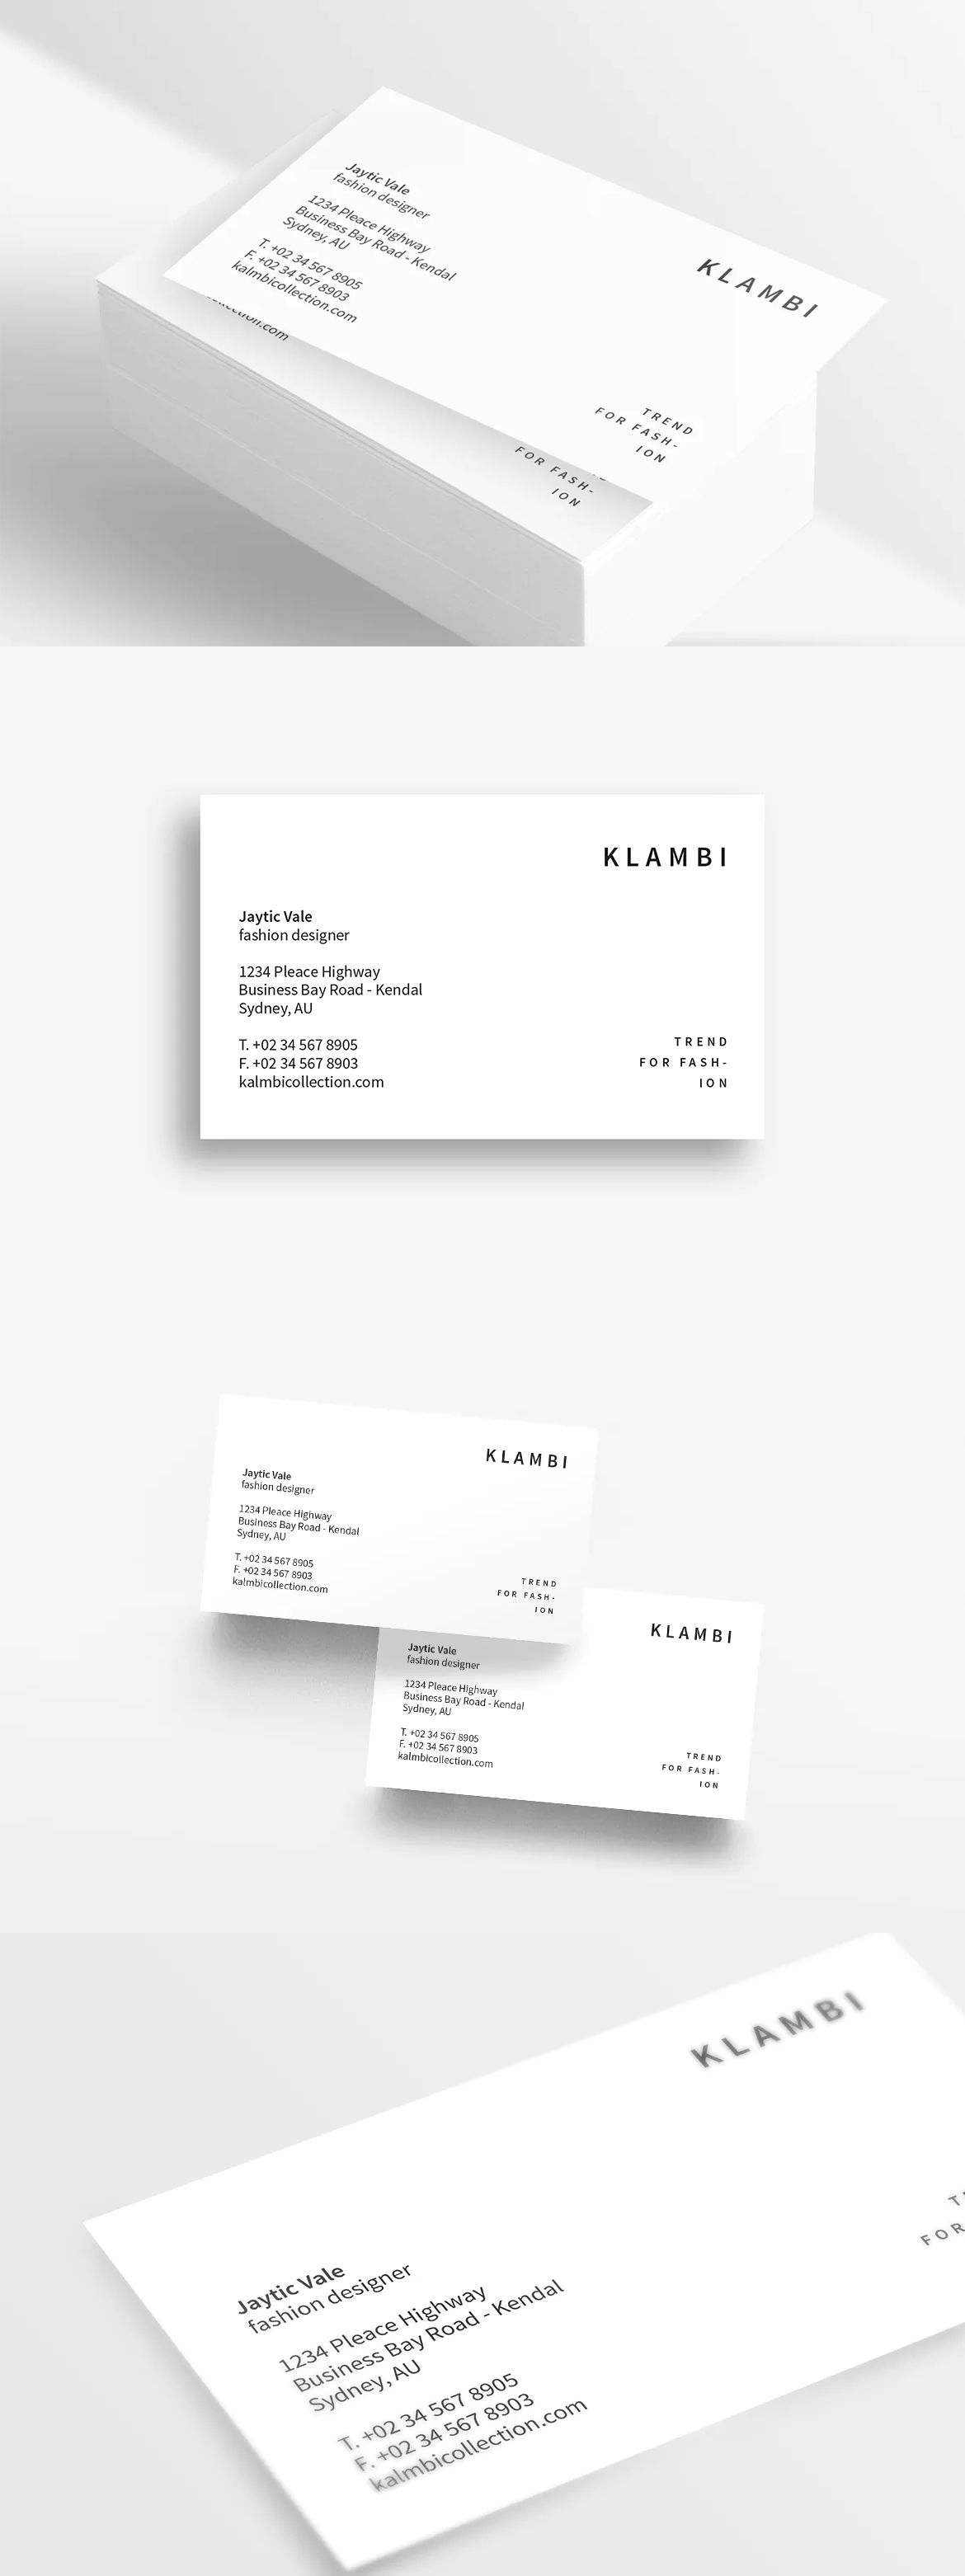 Business Card Templates Indesign Choice Image Business Cards Ideas - Business card template indd